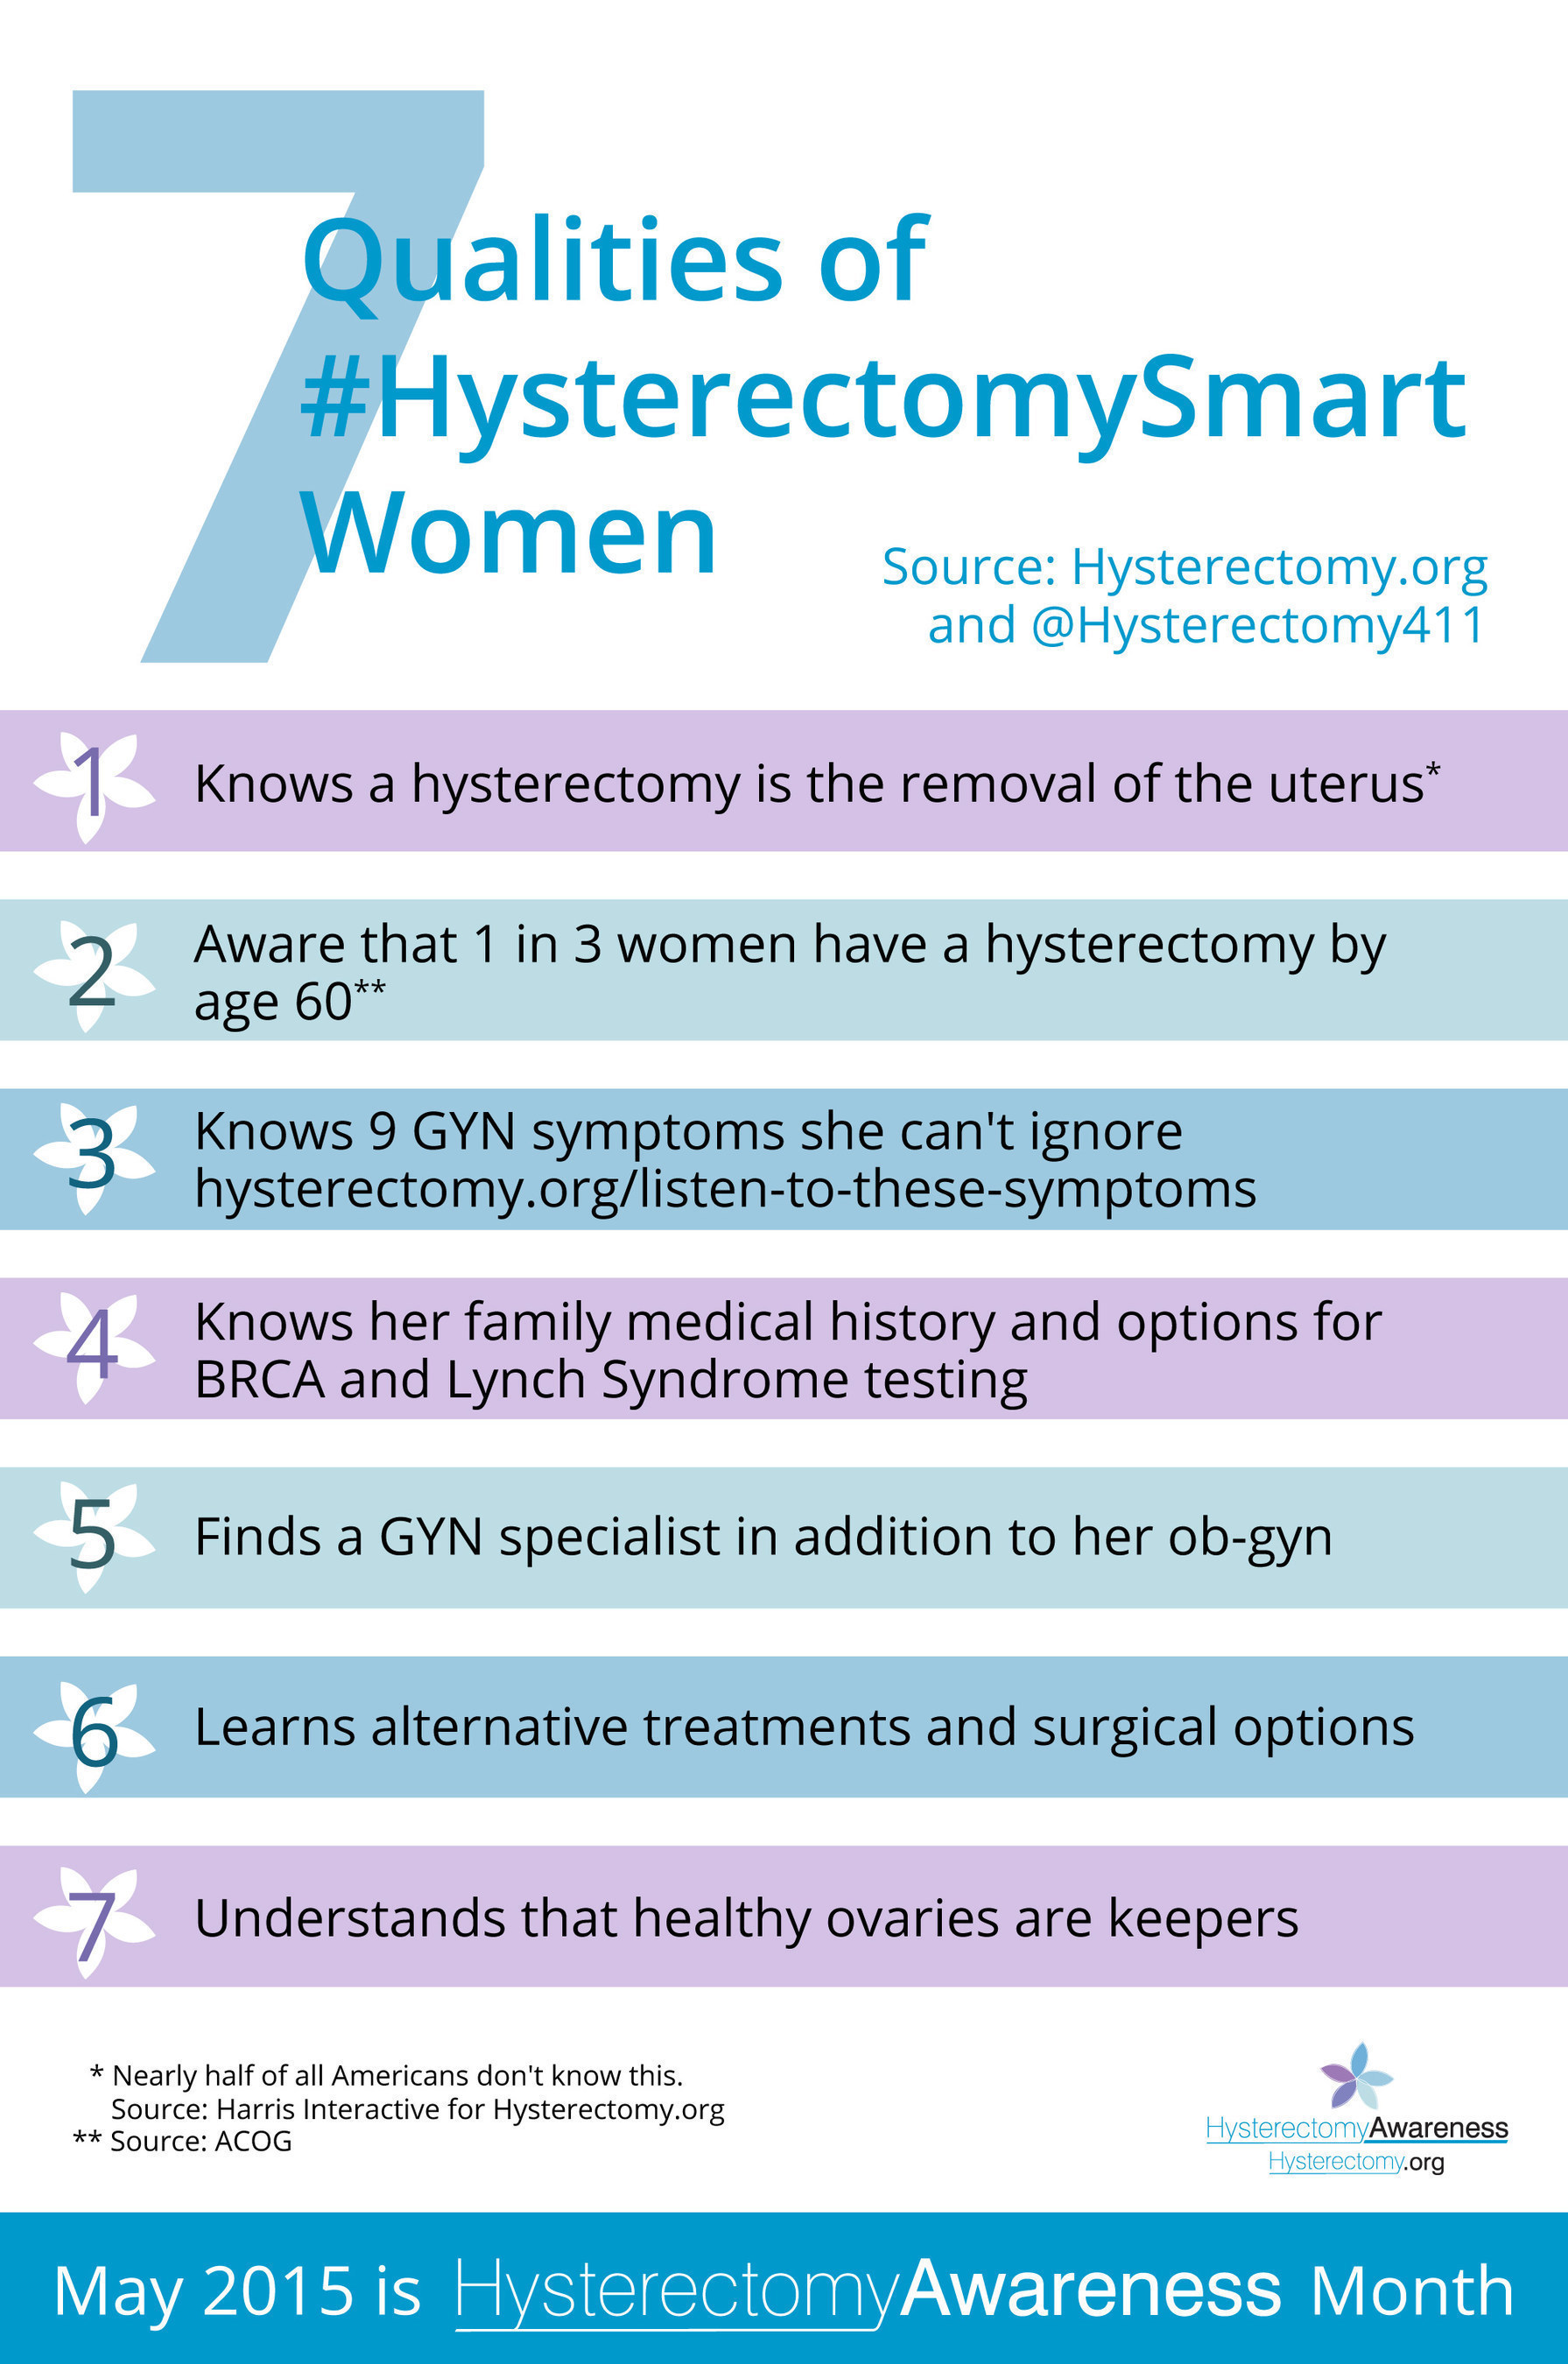 Almost half of American adults are incorrect or don't know what a hysterectomy is, which affects one in 3 women by age 60. (Source: Harris Interactive). May 2015 is Hysterectomy Awareness Month. (Survey was conducted online within the United States by Harris Poll on behalf of Hysterectomy.org from February 11-13, 2015 among 2,026 adults ages 18 and older. This online survey is not based on a probability sample and therefore no estimate of theoretical sampling error can be calculated. For complete survey methodology, including weighting variables, please contact Laura Williams, 512.497.8035.)